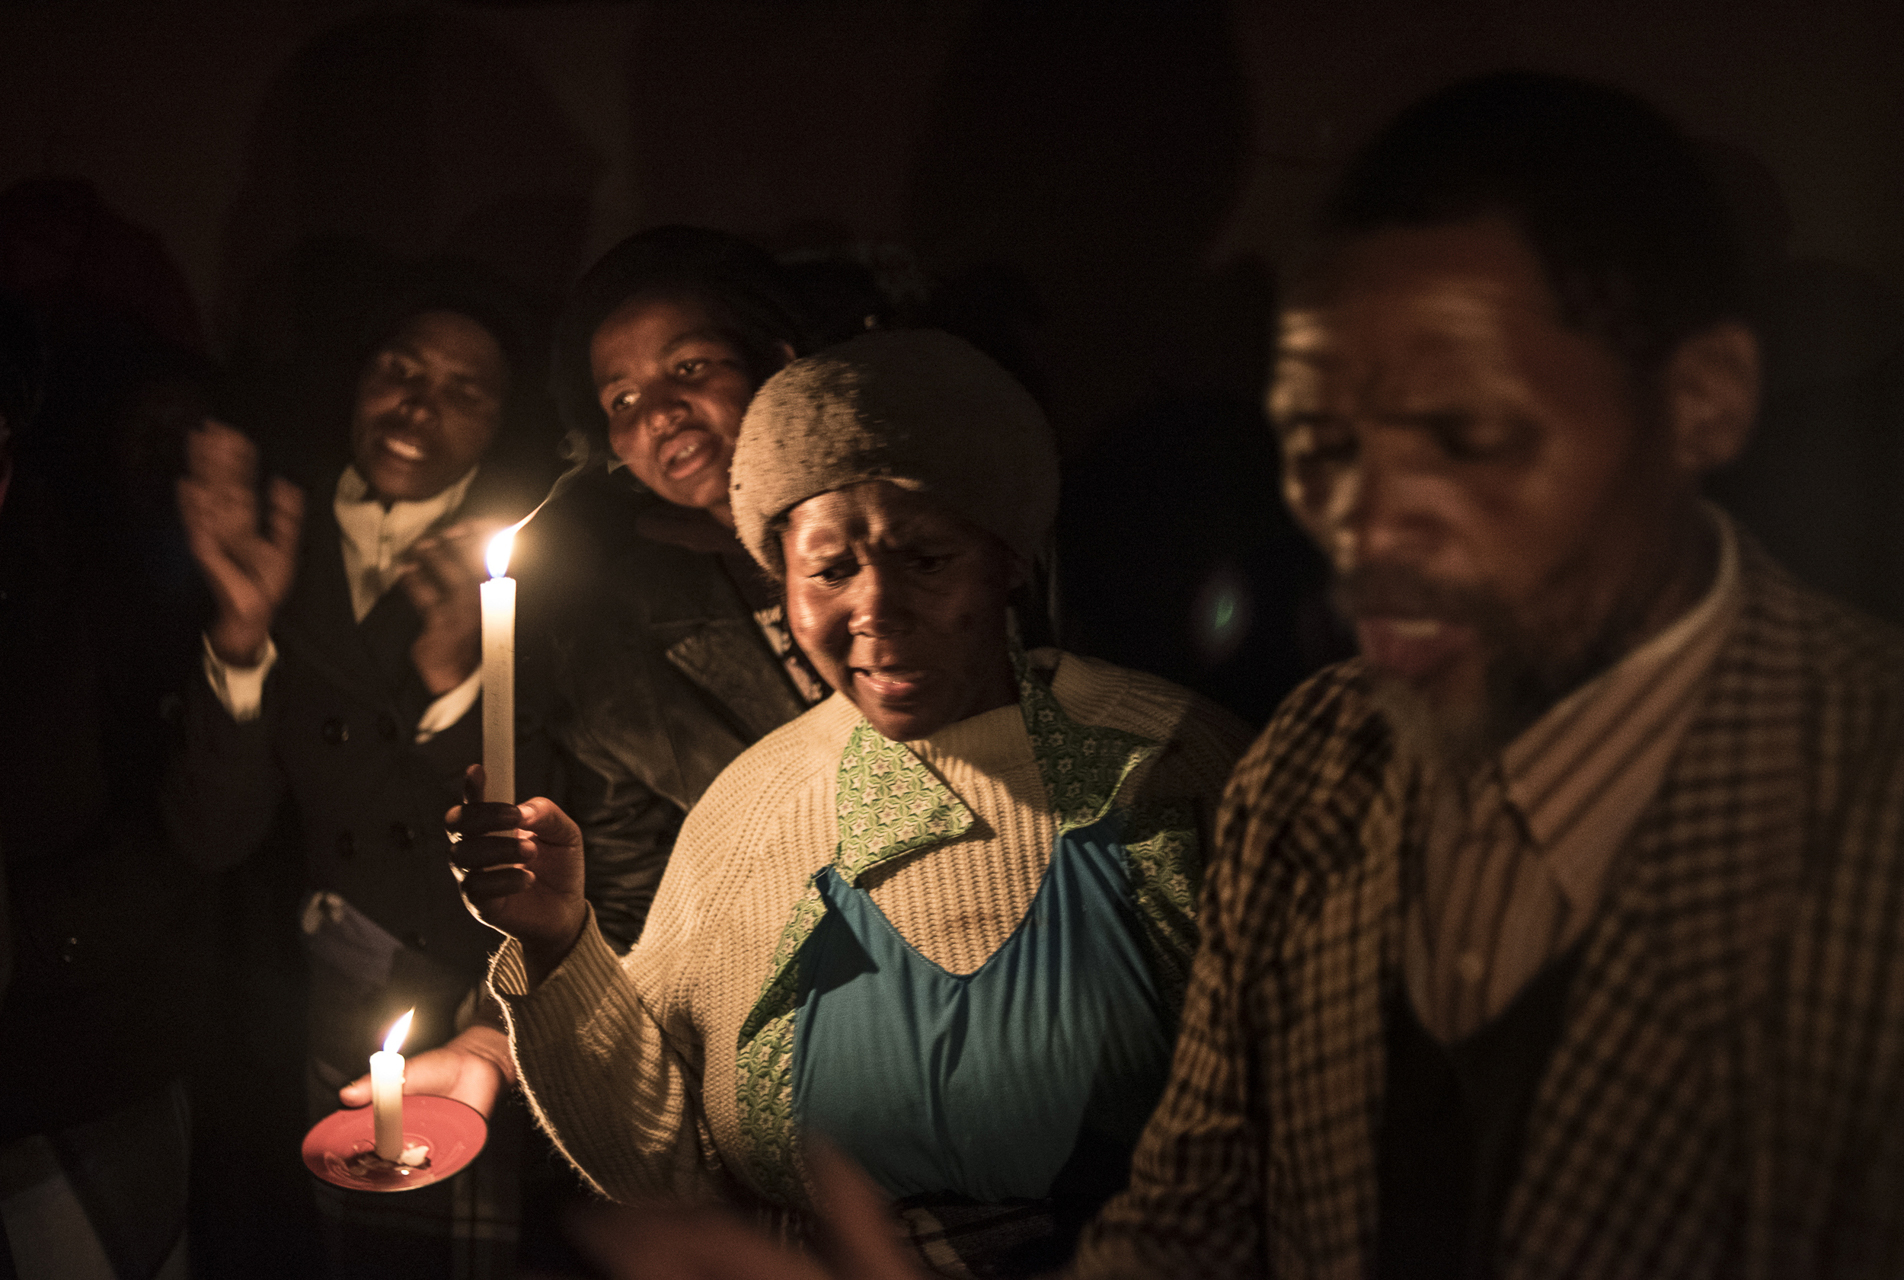 Paul Botes. Mourners sing at the funeral of Sandisa Zimbambele (22), the daughter of Thobisile and Nokuthula Zimbambele, poisoned herself. Her mother had taken a job at Lonmin after her husband had been killed on August 12 2012. From  Marikana - The Aftermath,  2013 – on-going